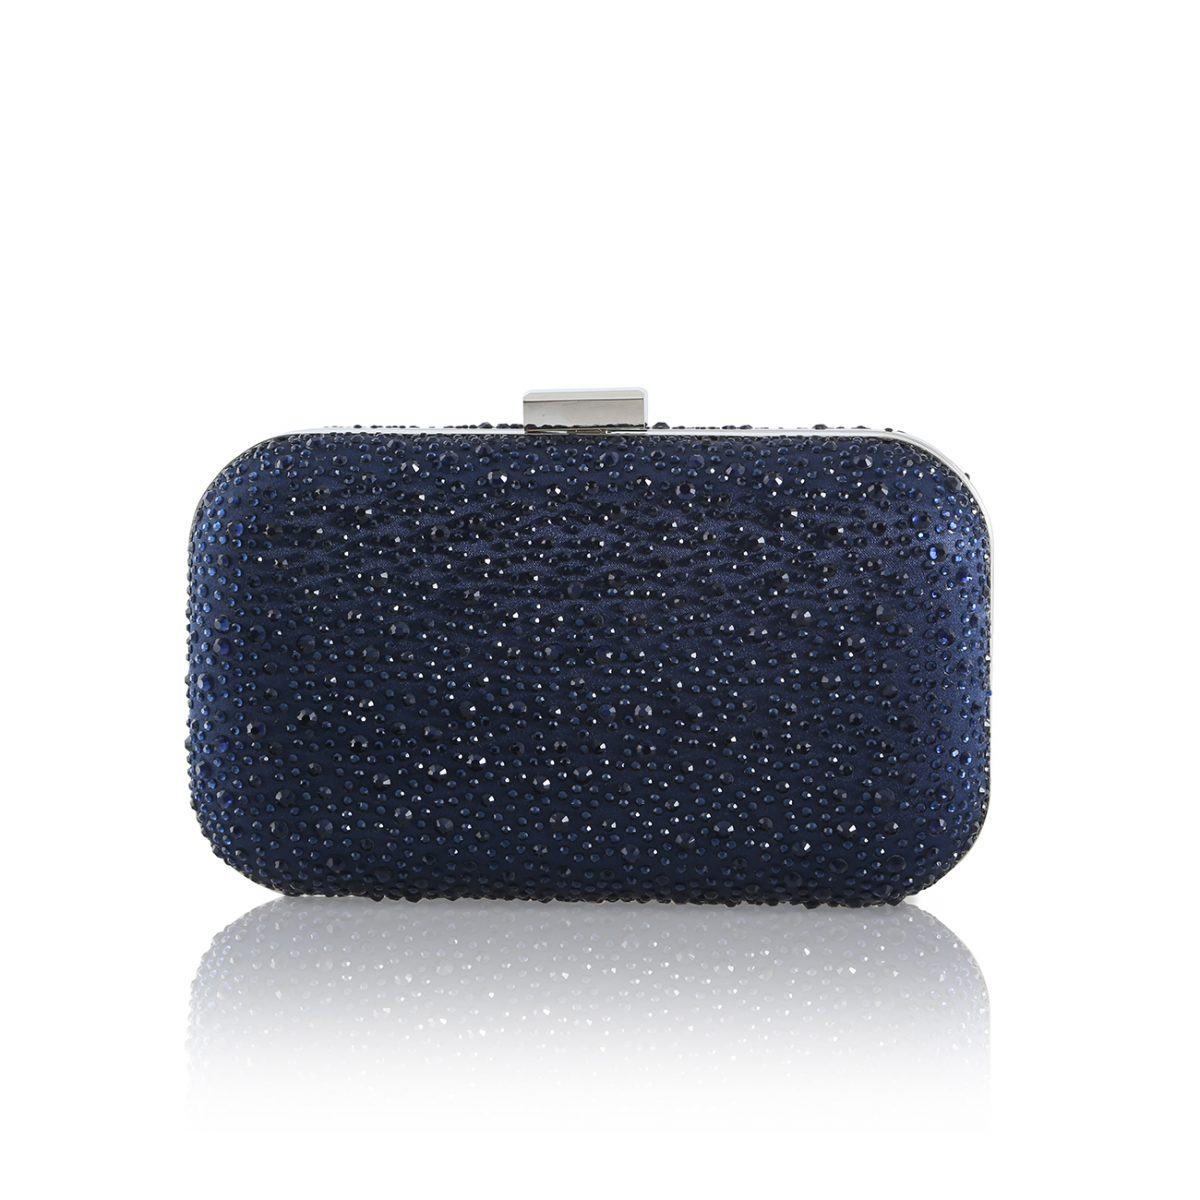 Perfect Bridal Sammy Bridal Bag - Navy